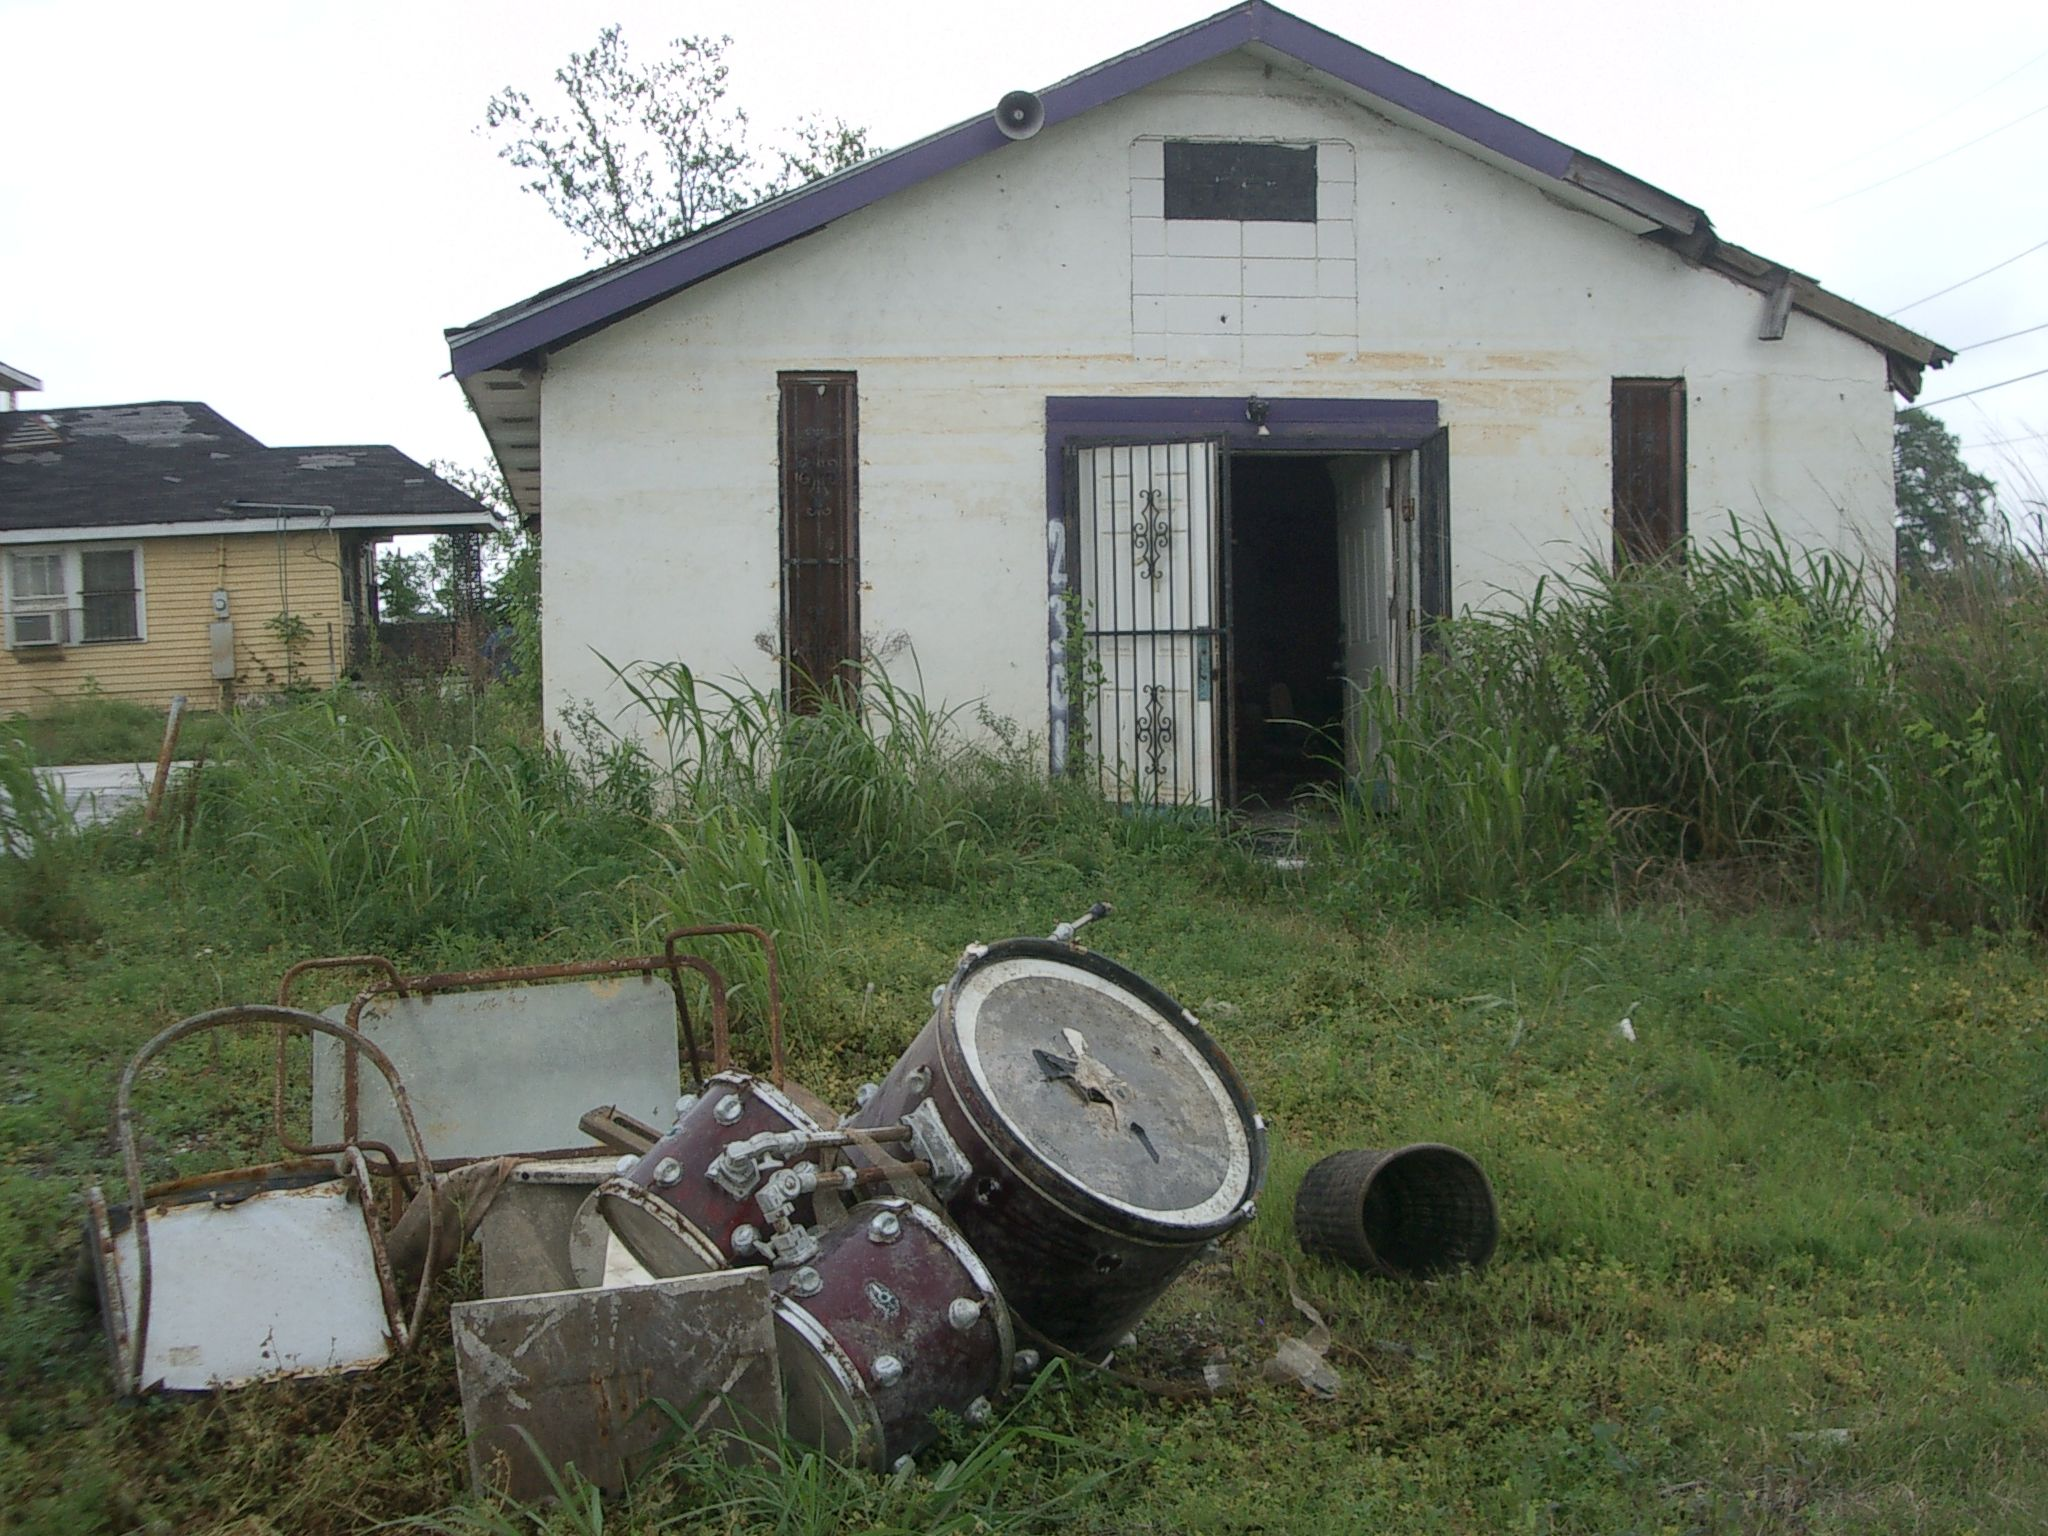 Katrina-destroyed church with trap set in front yard-circa 2007